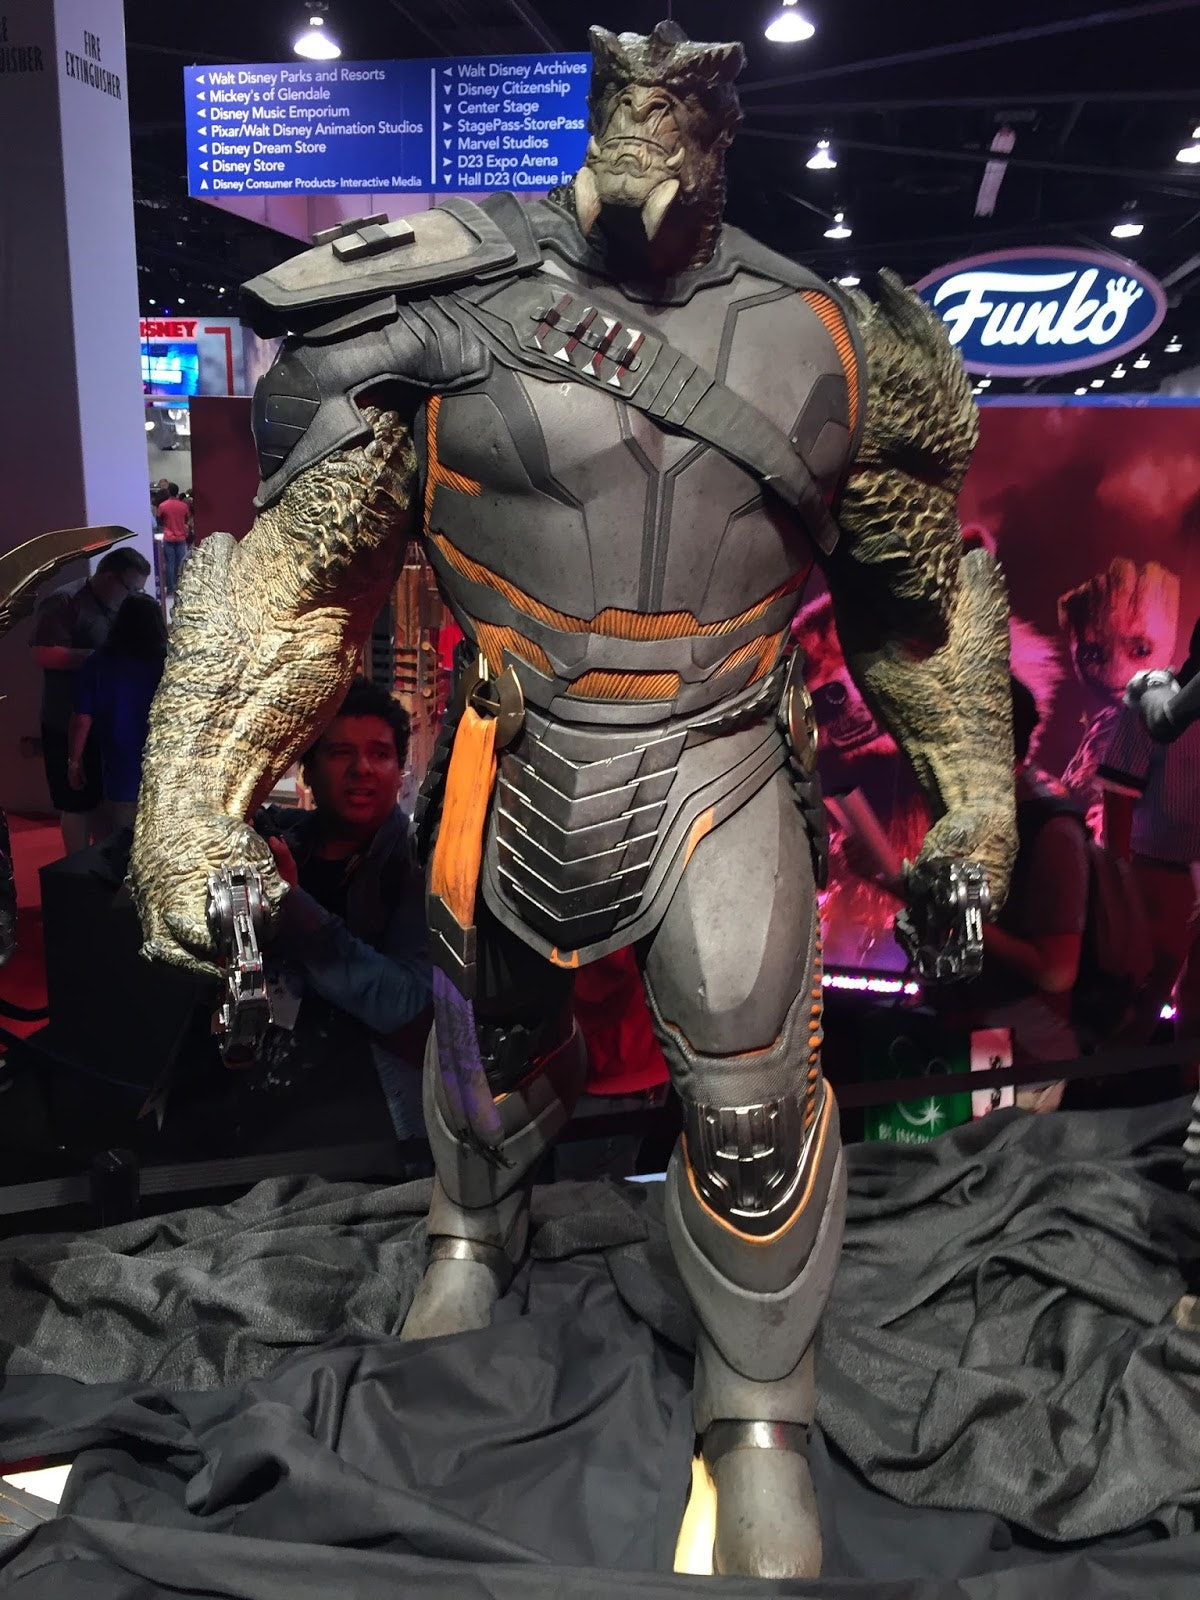 A statue Marvel made of Cull Obsidian on display at D23 Expo in 2017.